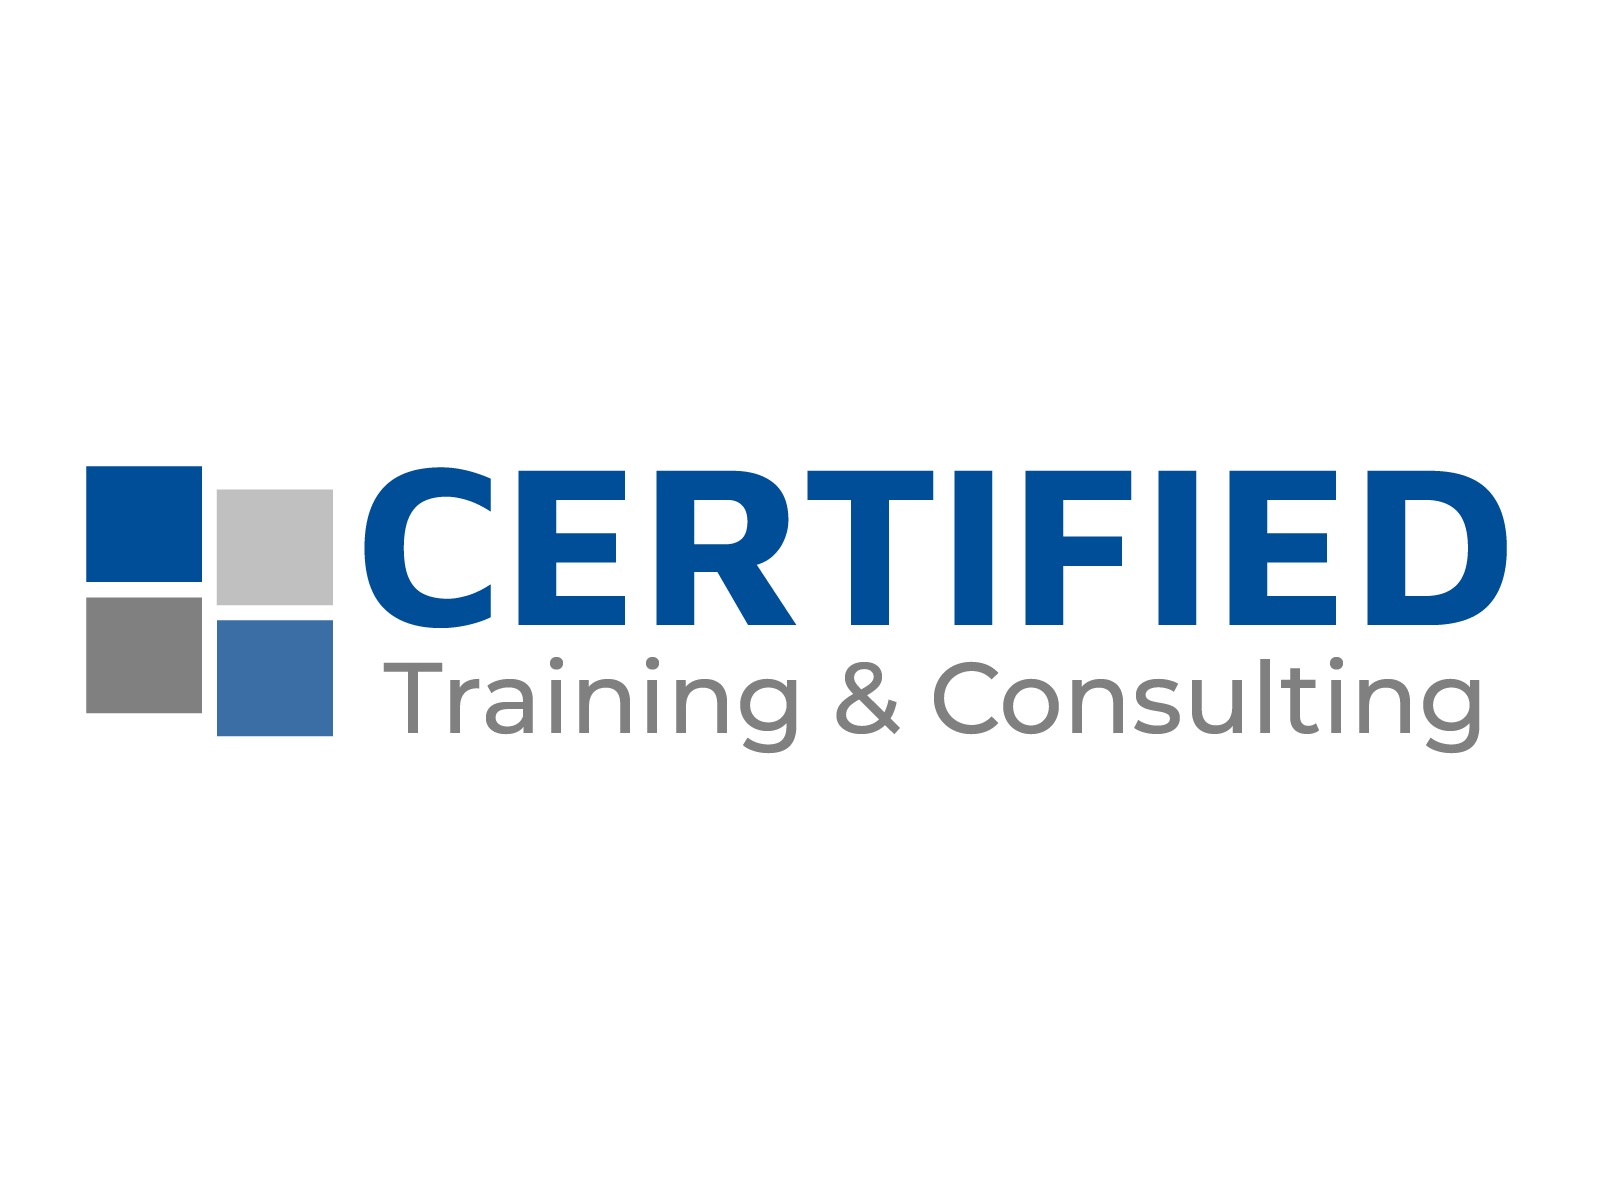 CERTIFIED TRAINING & CONSULTING